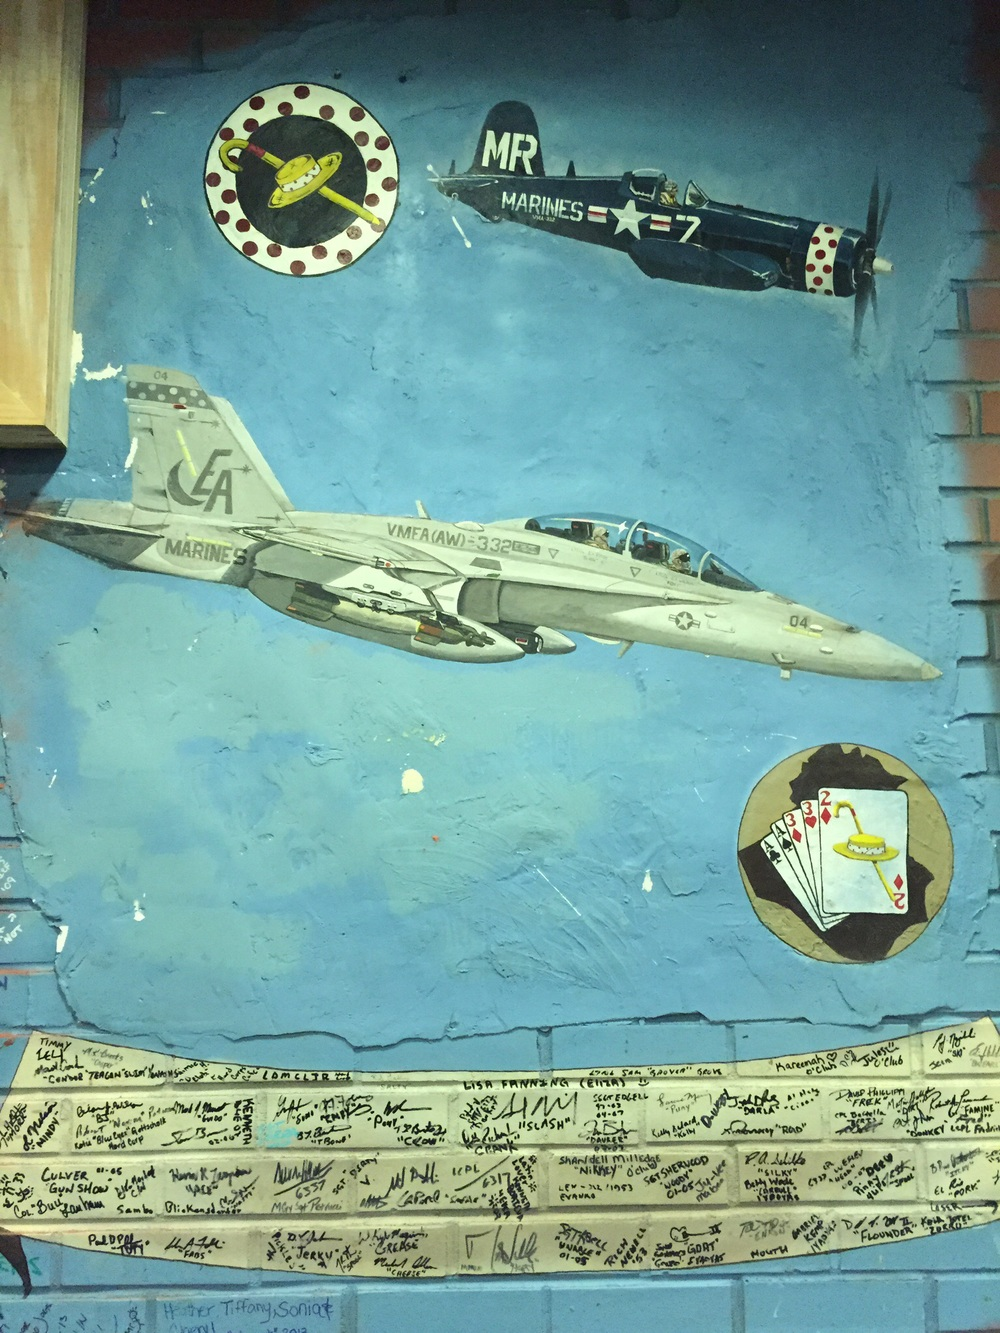 This image is from the wall of a bar at a Marine Air Base